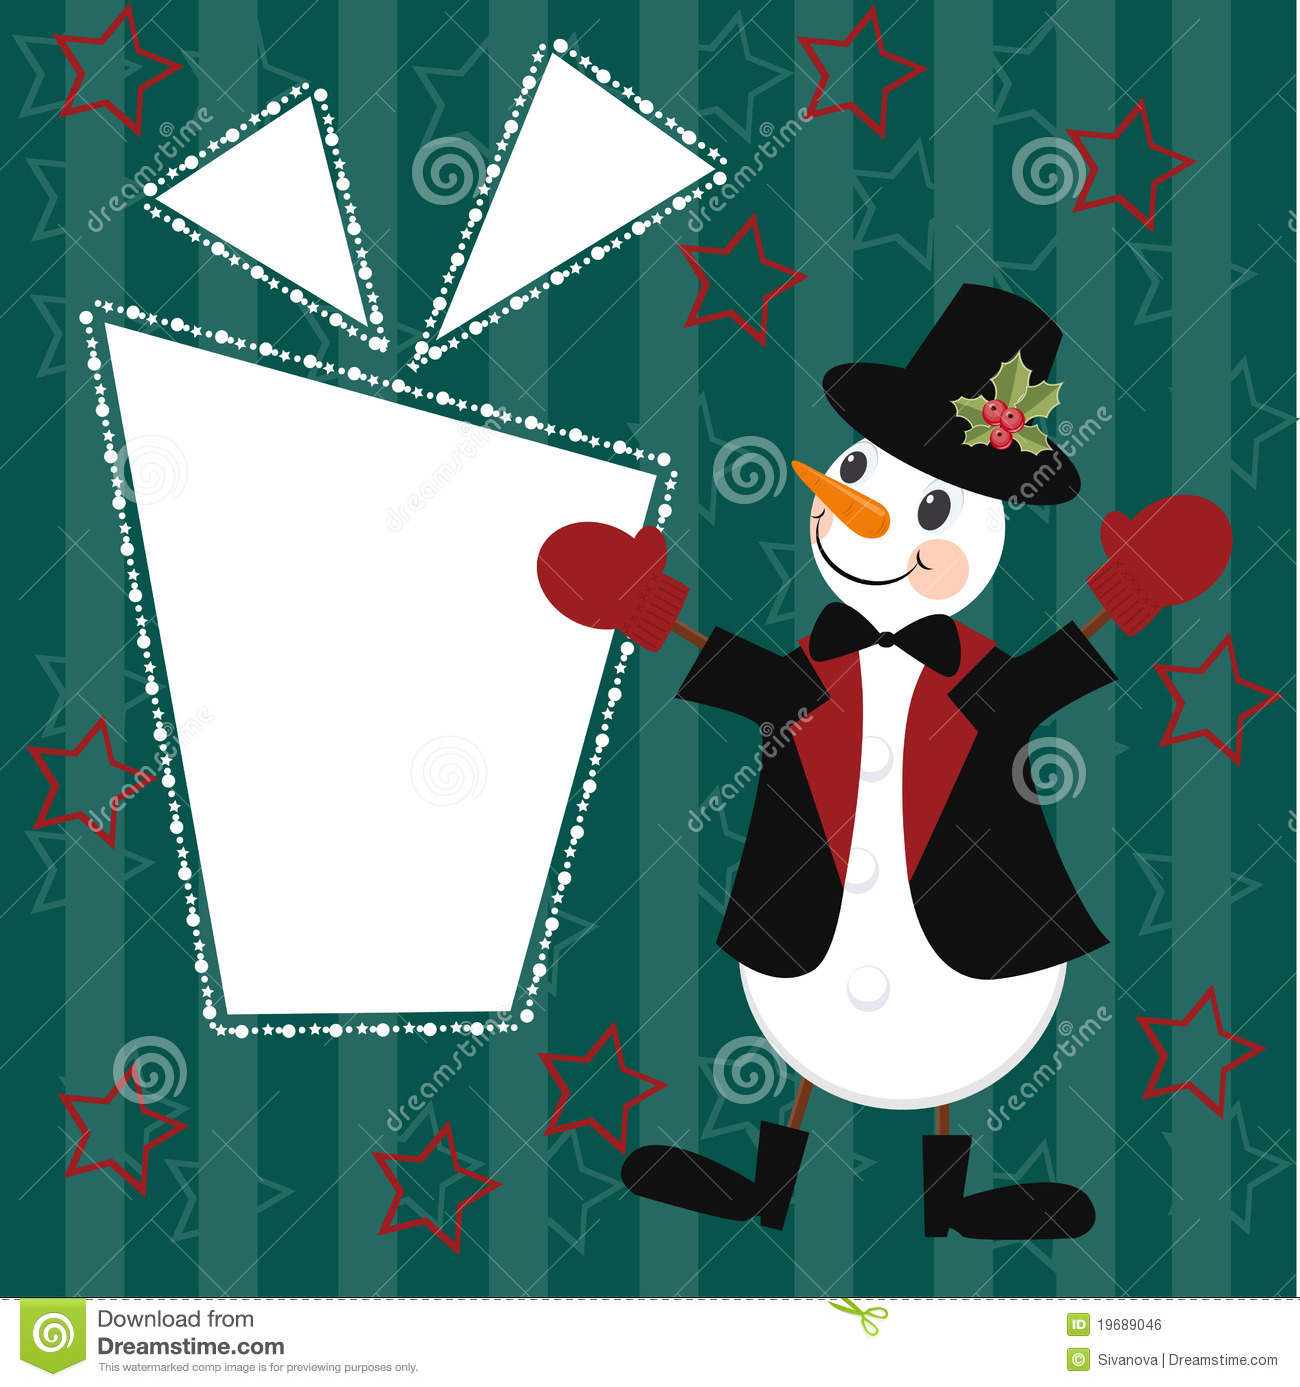 Christmas and New Years card with snowman